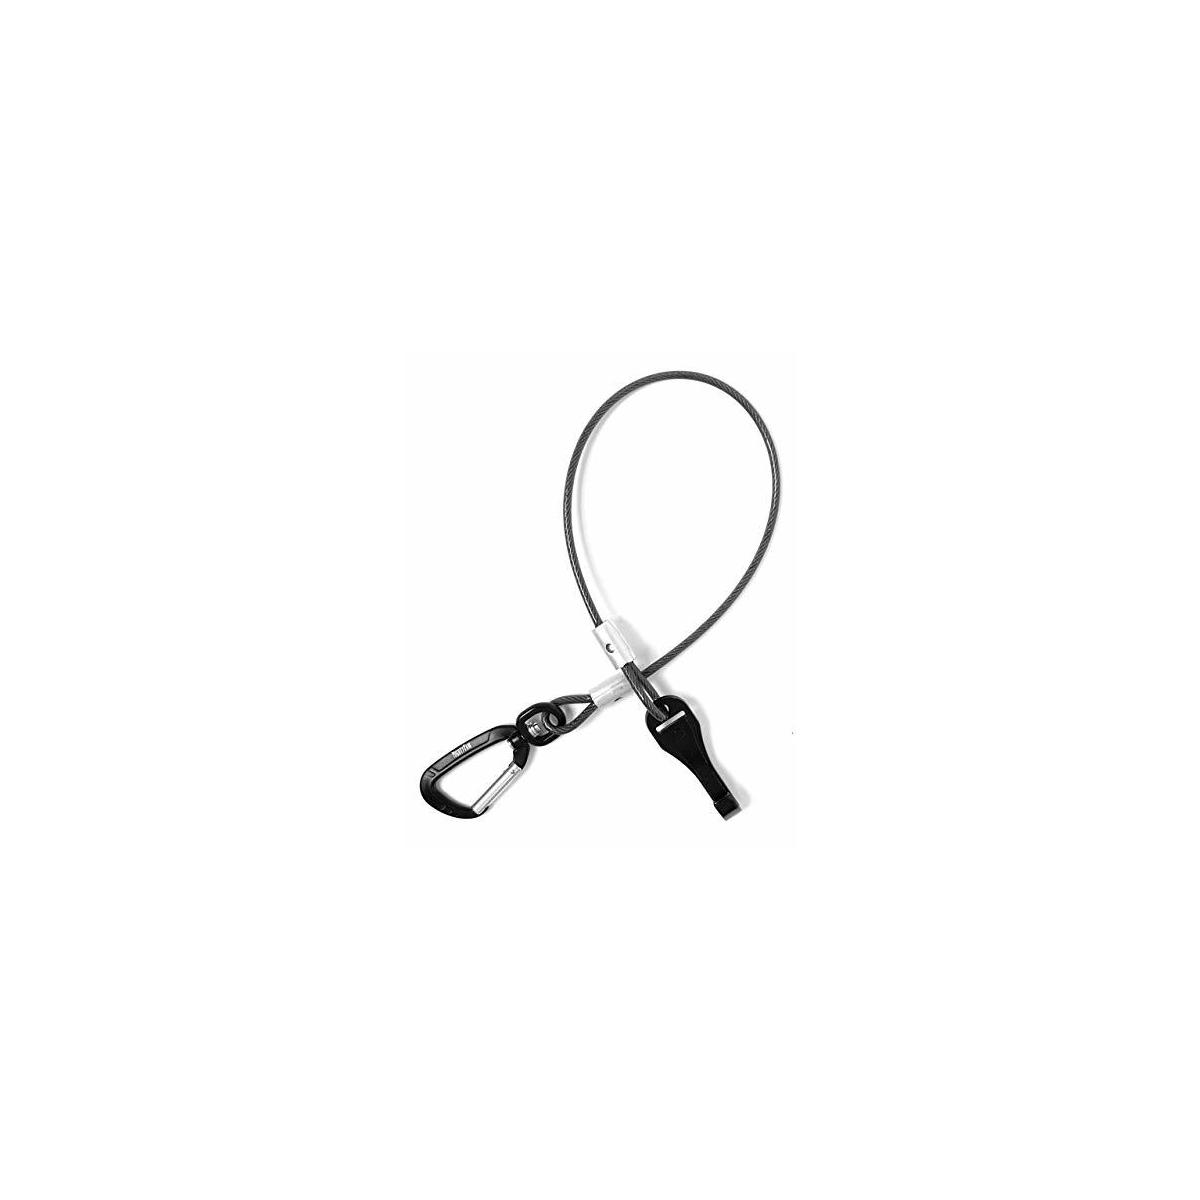 Mighty Paw Chew-Proof Dog Seat Belt - Steel Cable Safety Belt, Steel Braided Cord and Rock Climbers Carabiner